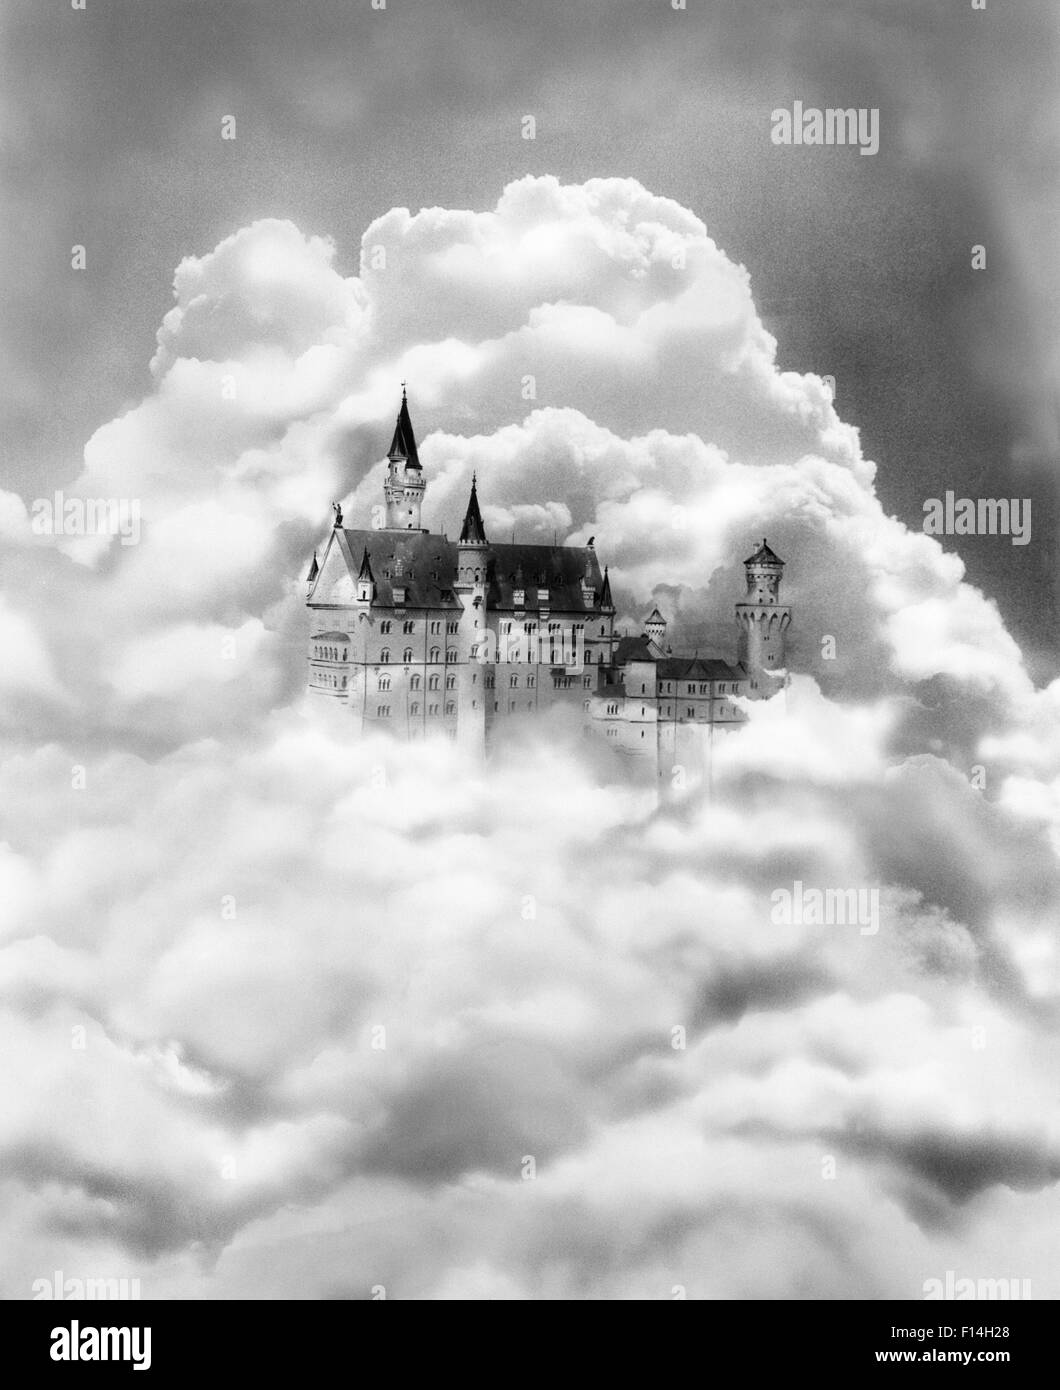 1930s FAIRY TALE CASTLE IN THE CLOUDS - Stock Image